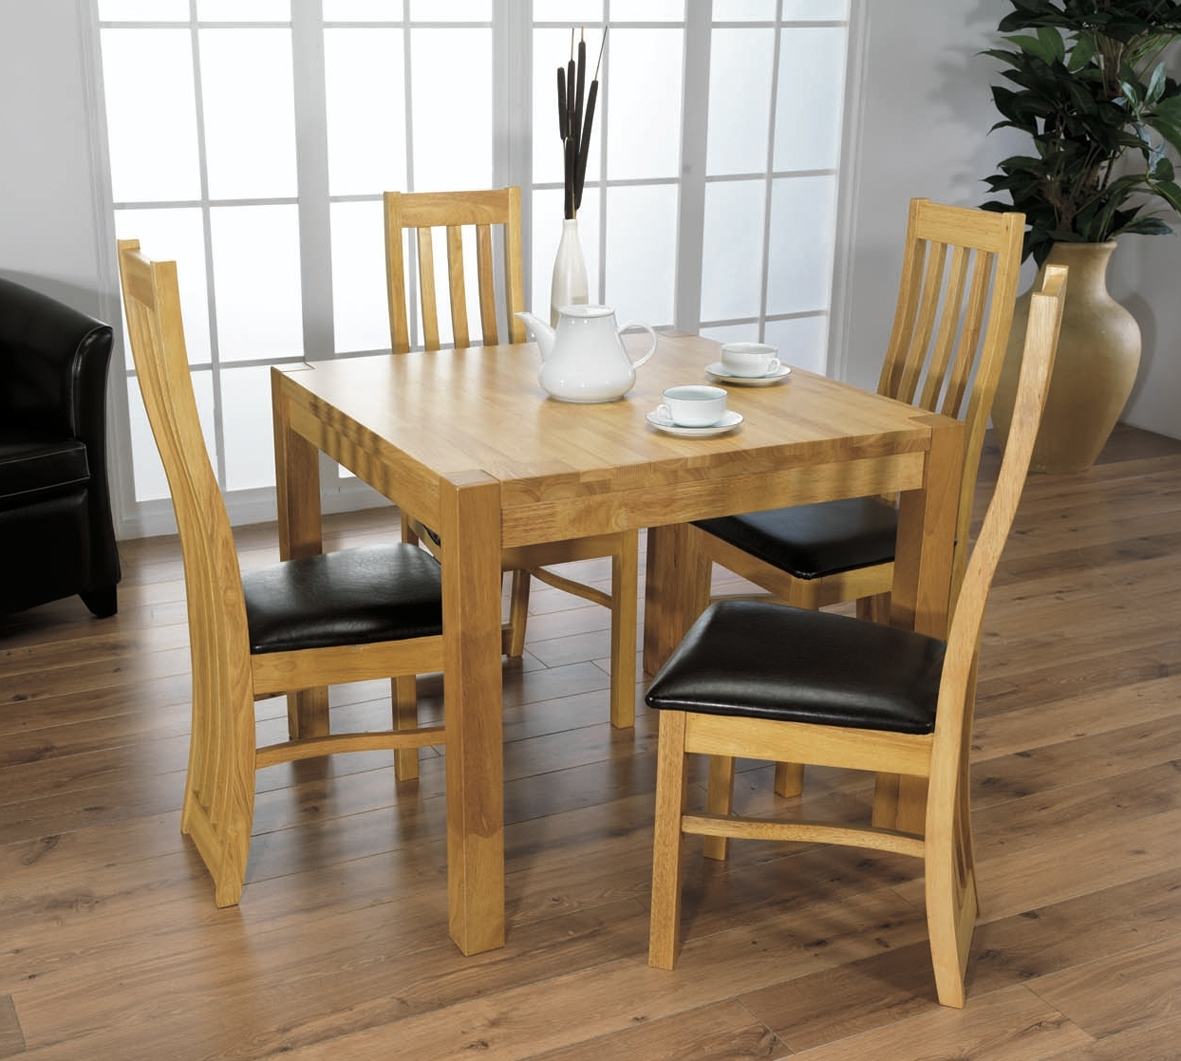 Why A Small Dining Table And Chairs Is A Premium Choice – Blogbeen Pertaining To 2018 Small Dining Sets (View 10 of 25)